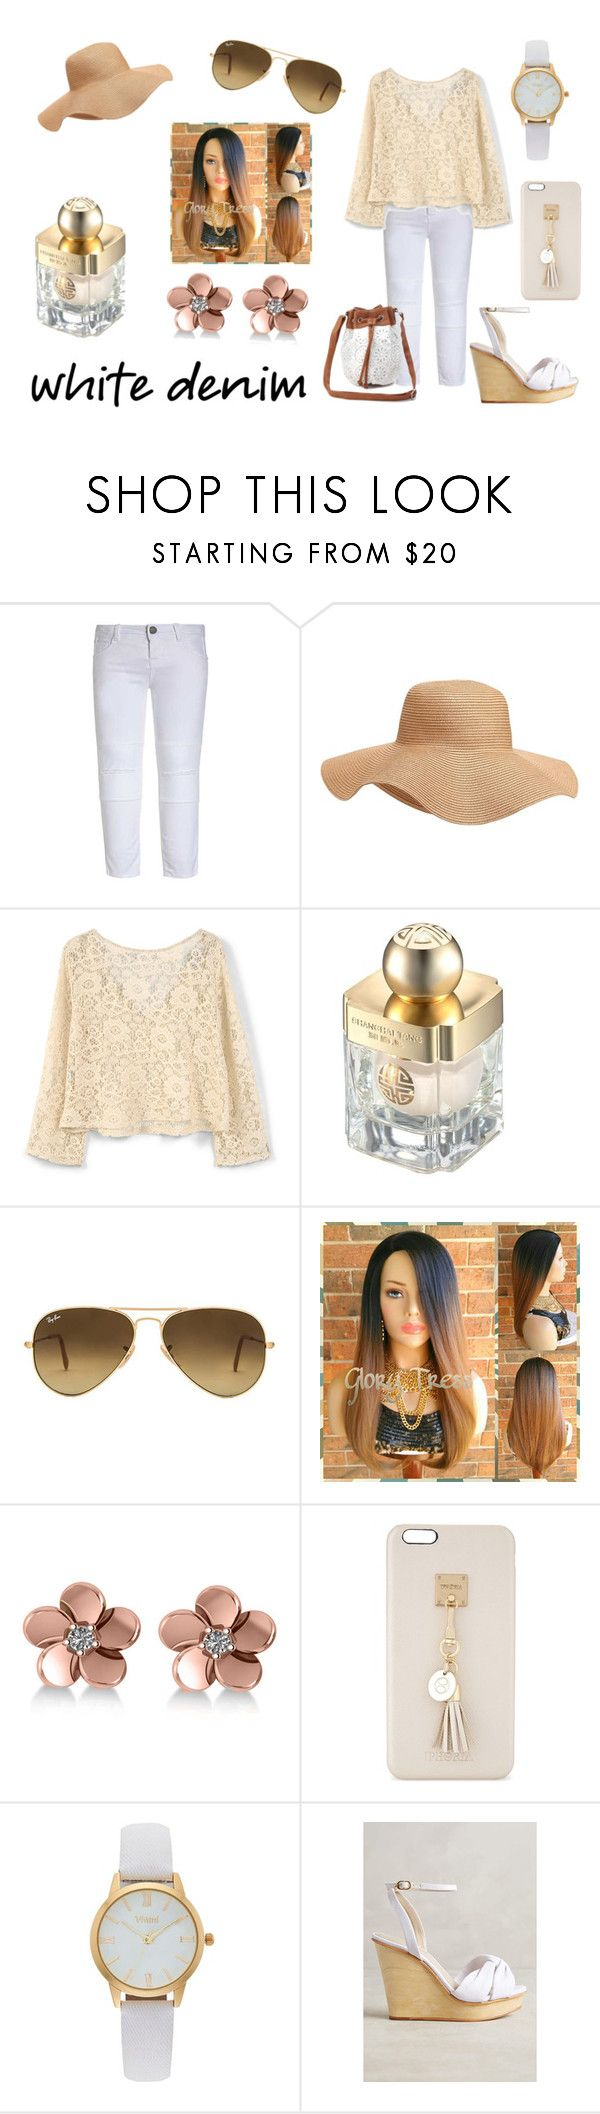 """White denim"" by emily-dickson-1 ❤ liked on Polyvore featuring Old Navy, MANGO, Shanghai Tang, Ray-Ban, Allurez, Iphoria, Vivani, Guilhermina and Charlotte Russe"